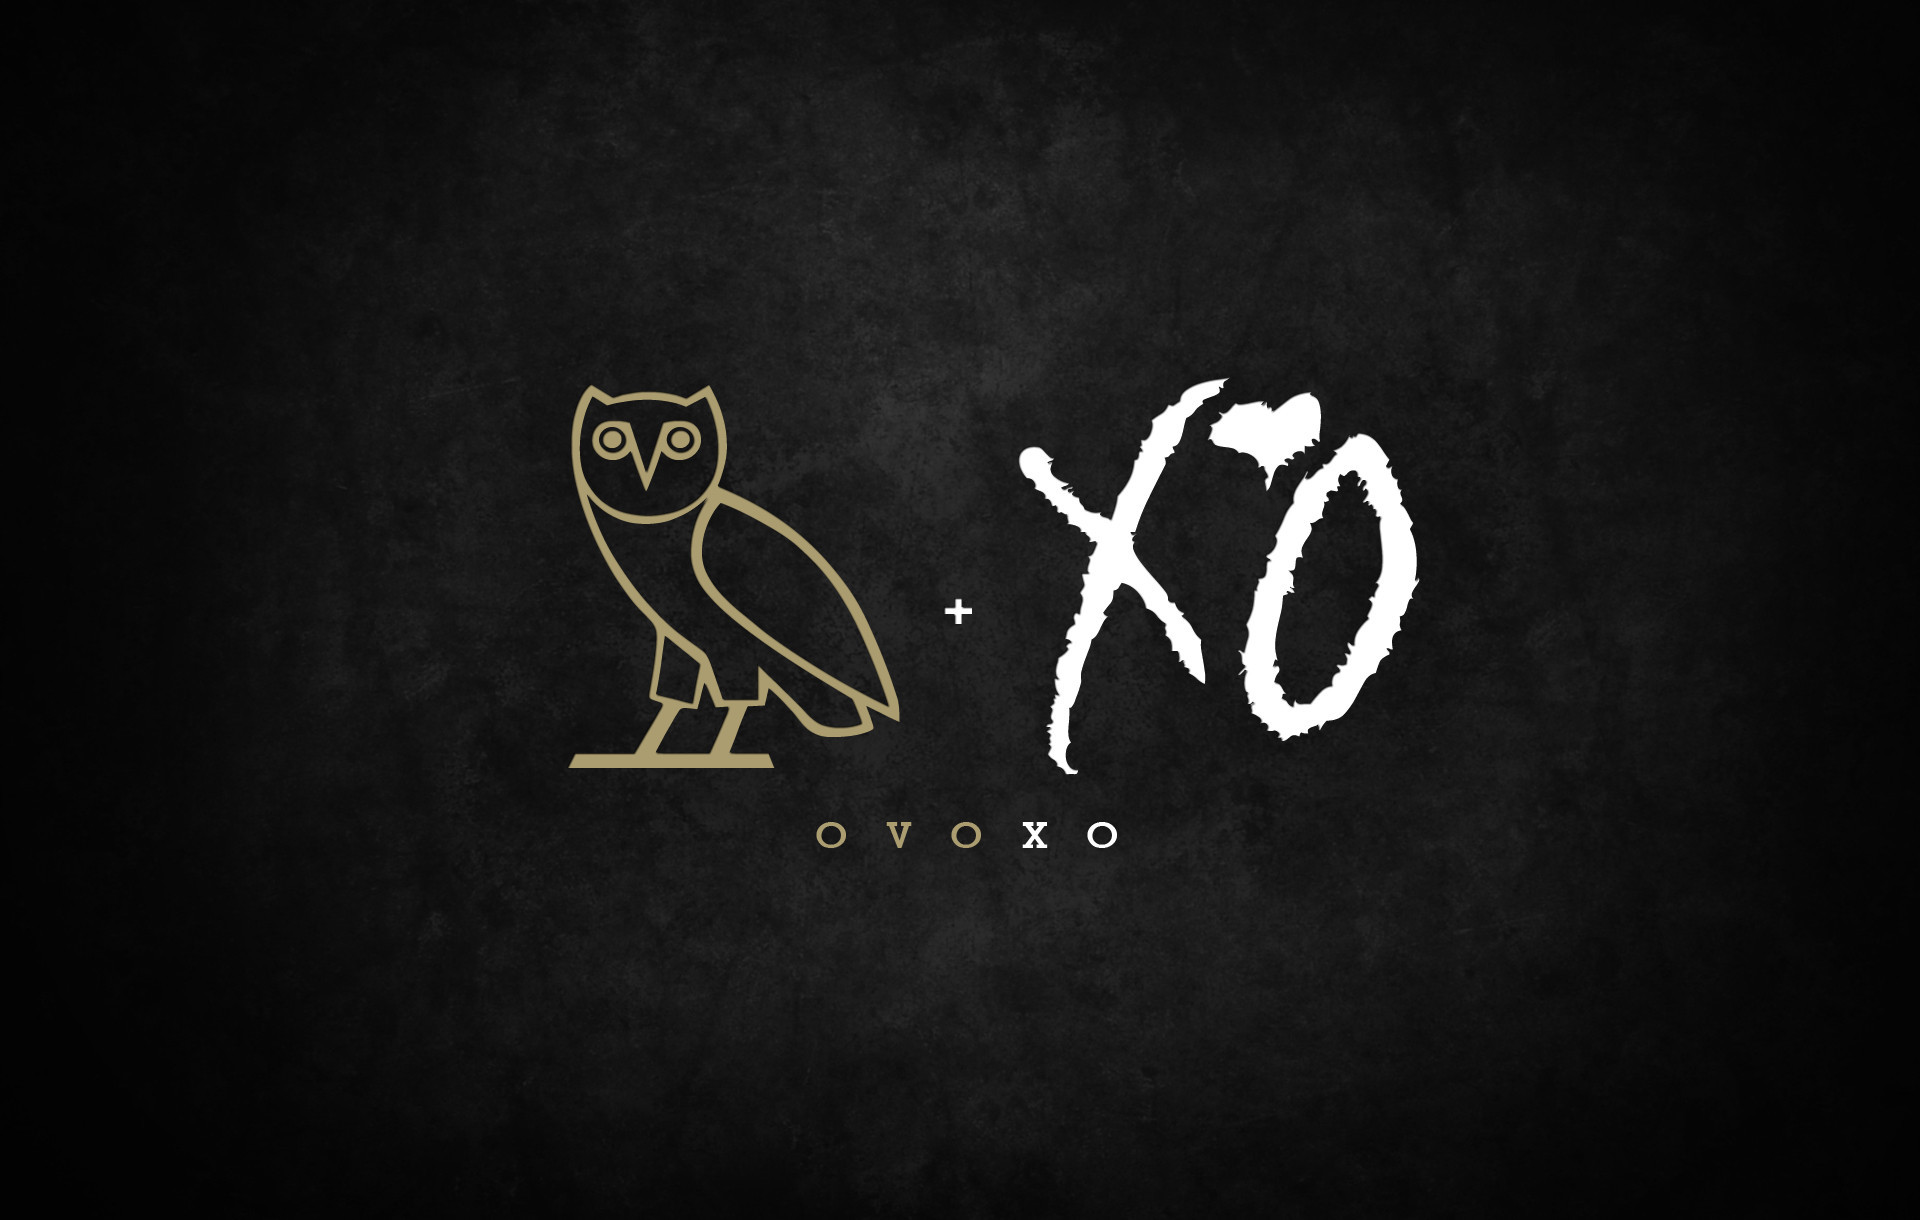 Drake Owl Wallpapers Desktop Background On Wallpaper Hd 1920 x 1220 px  703.85 KB quote 2016